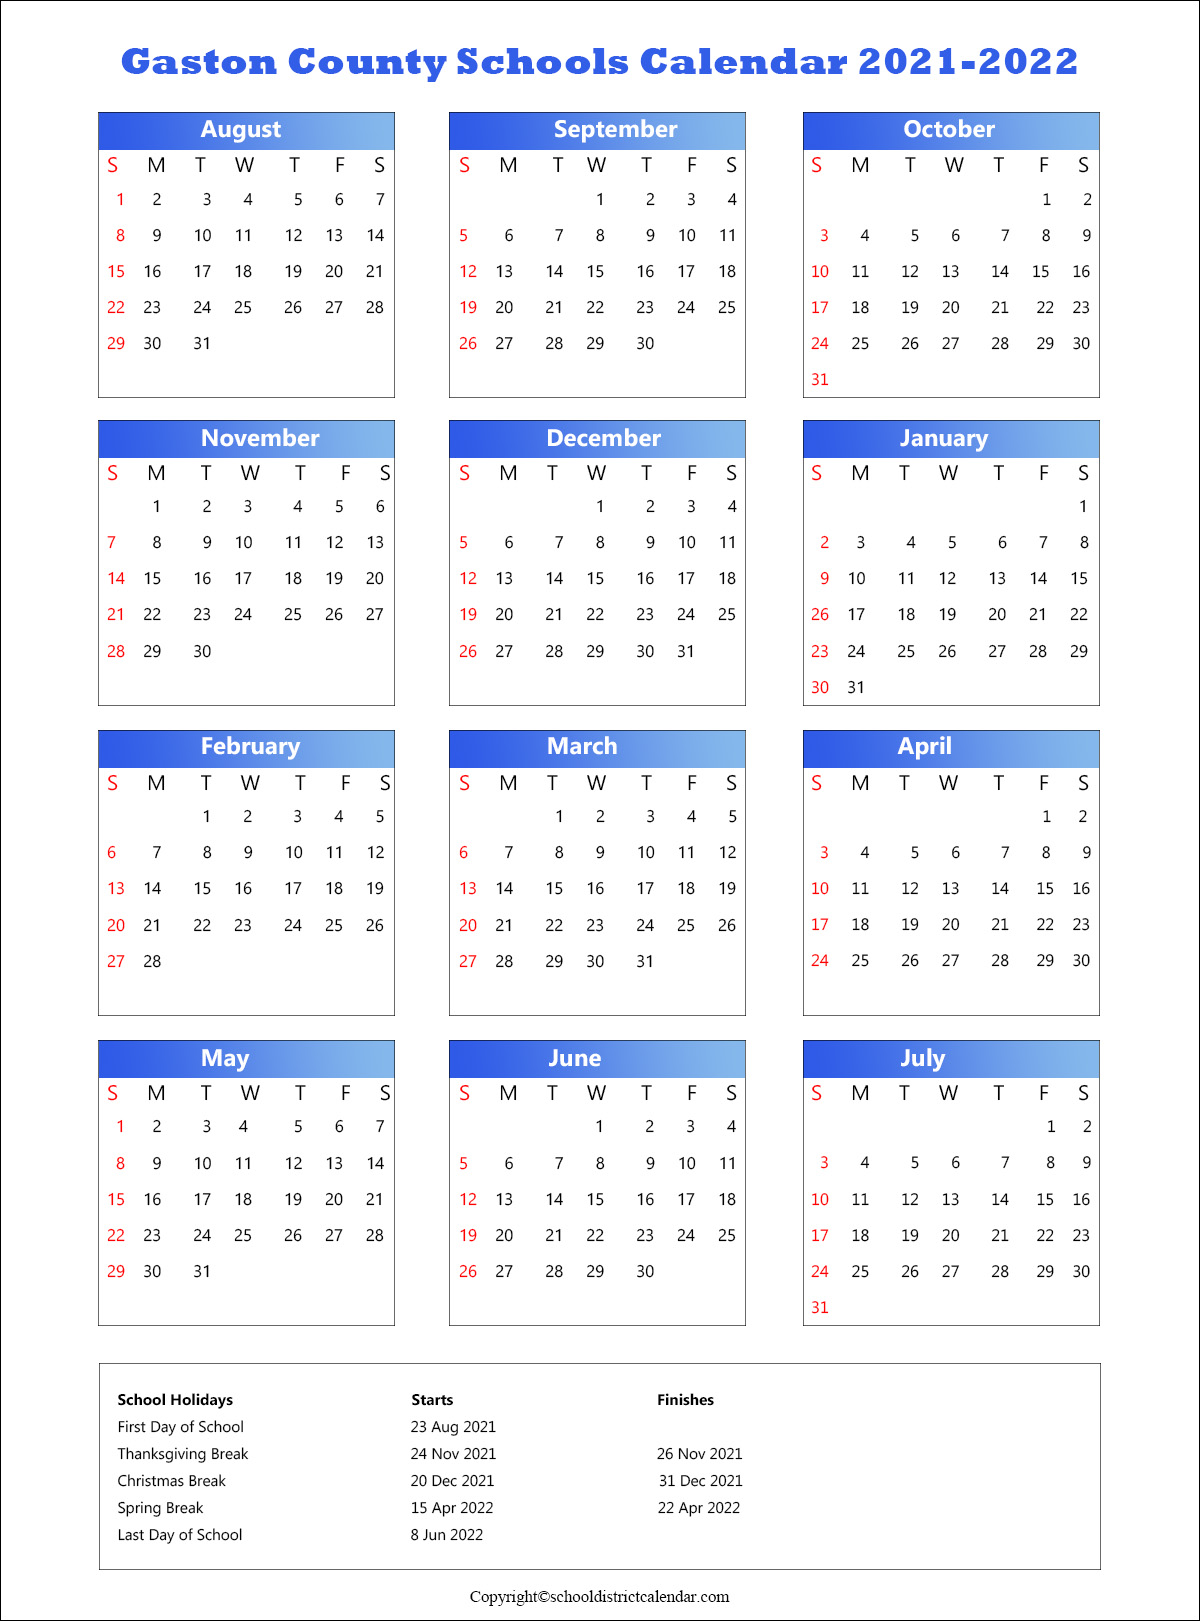 Gaston County Schools District Calendar 2021